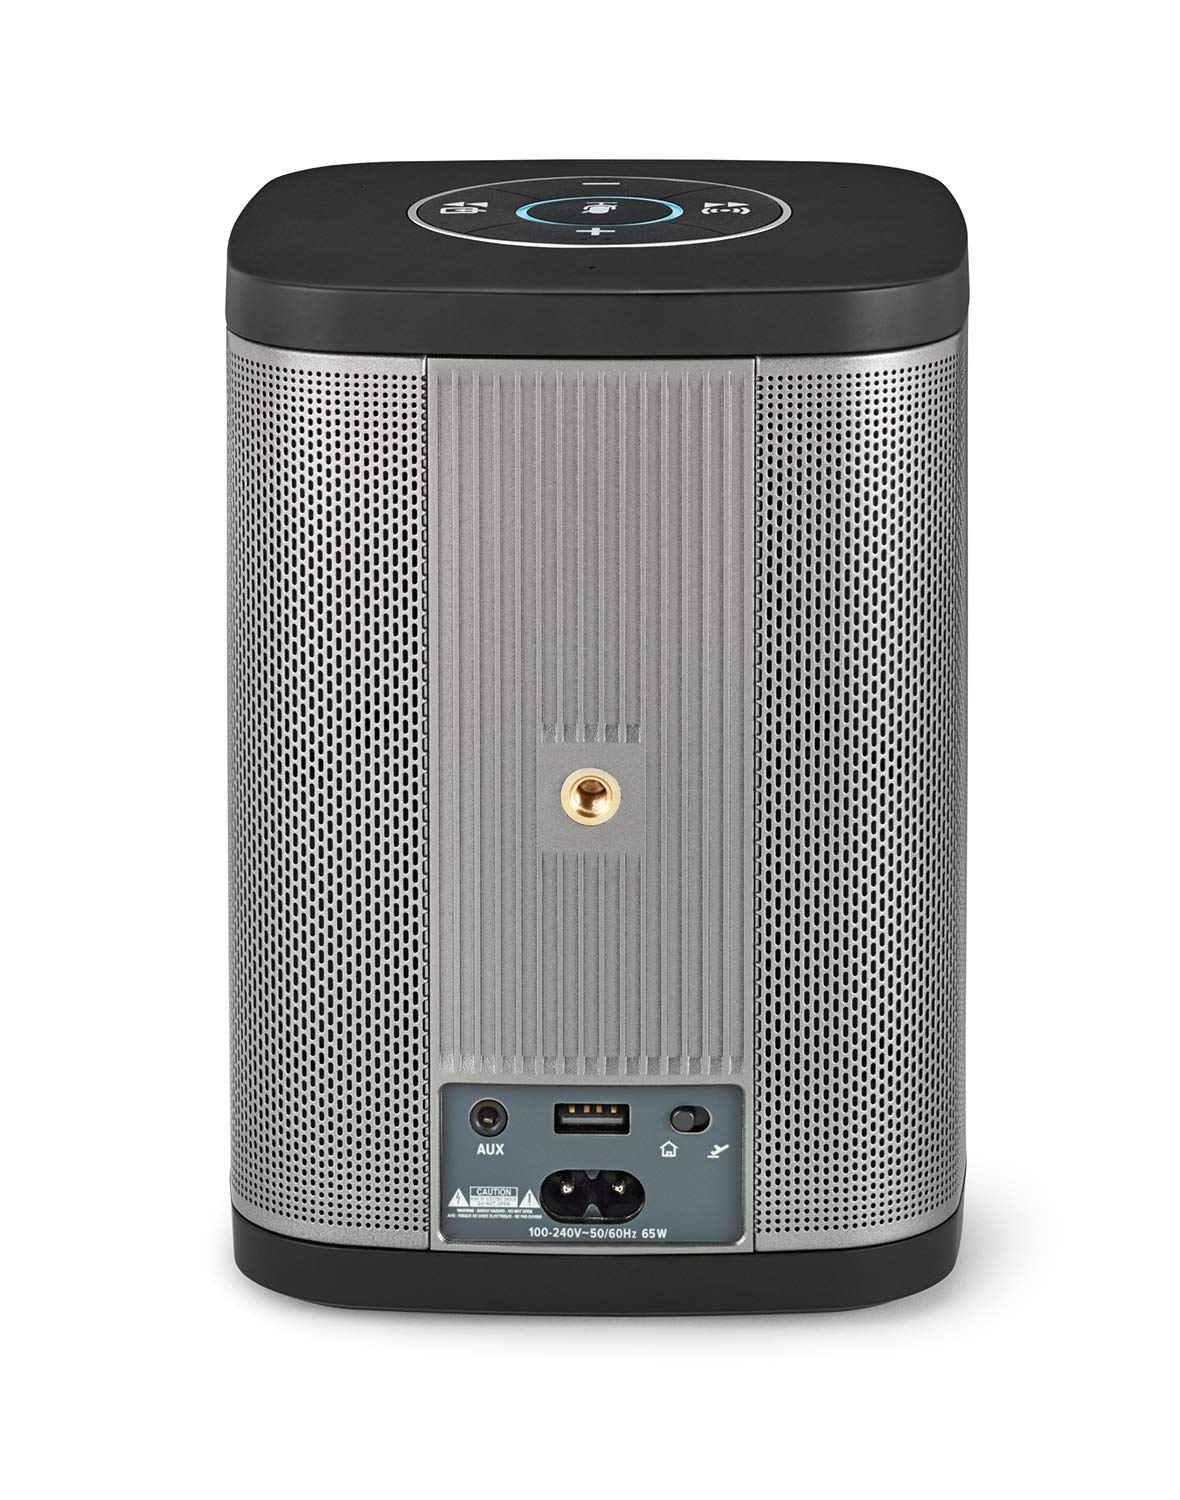 RIVA Concert with Alexa Built-in - Finally A Wireless Smart Speaker That Sounds Truly Amazing - WiFi, Airplay and Bluetooth Connectivity, Splash Resistant and Optional Battery (Black) by RIVA (Image #2)